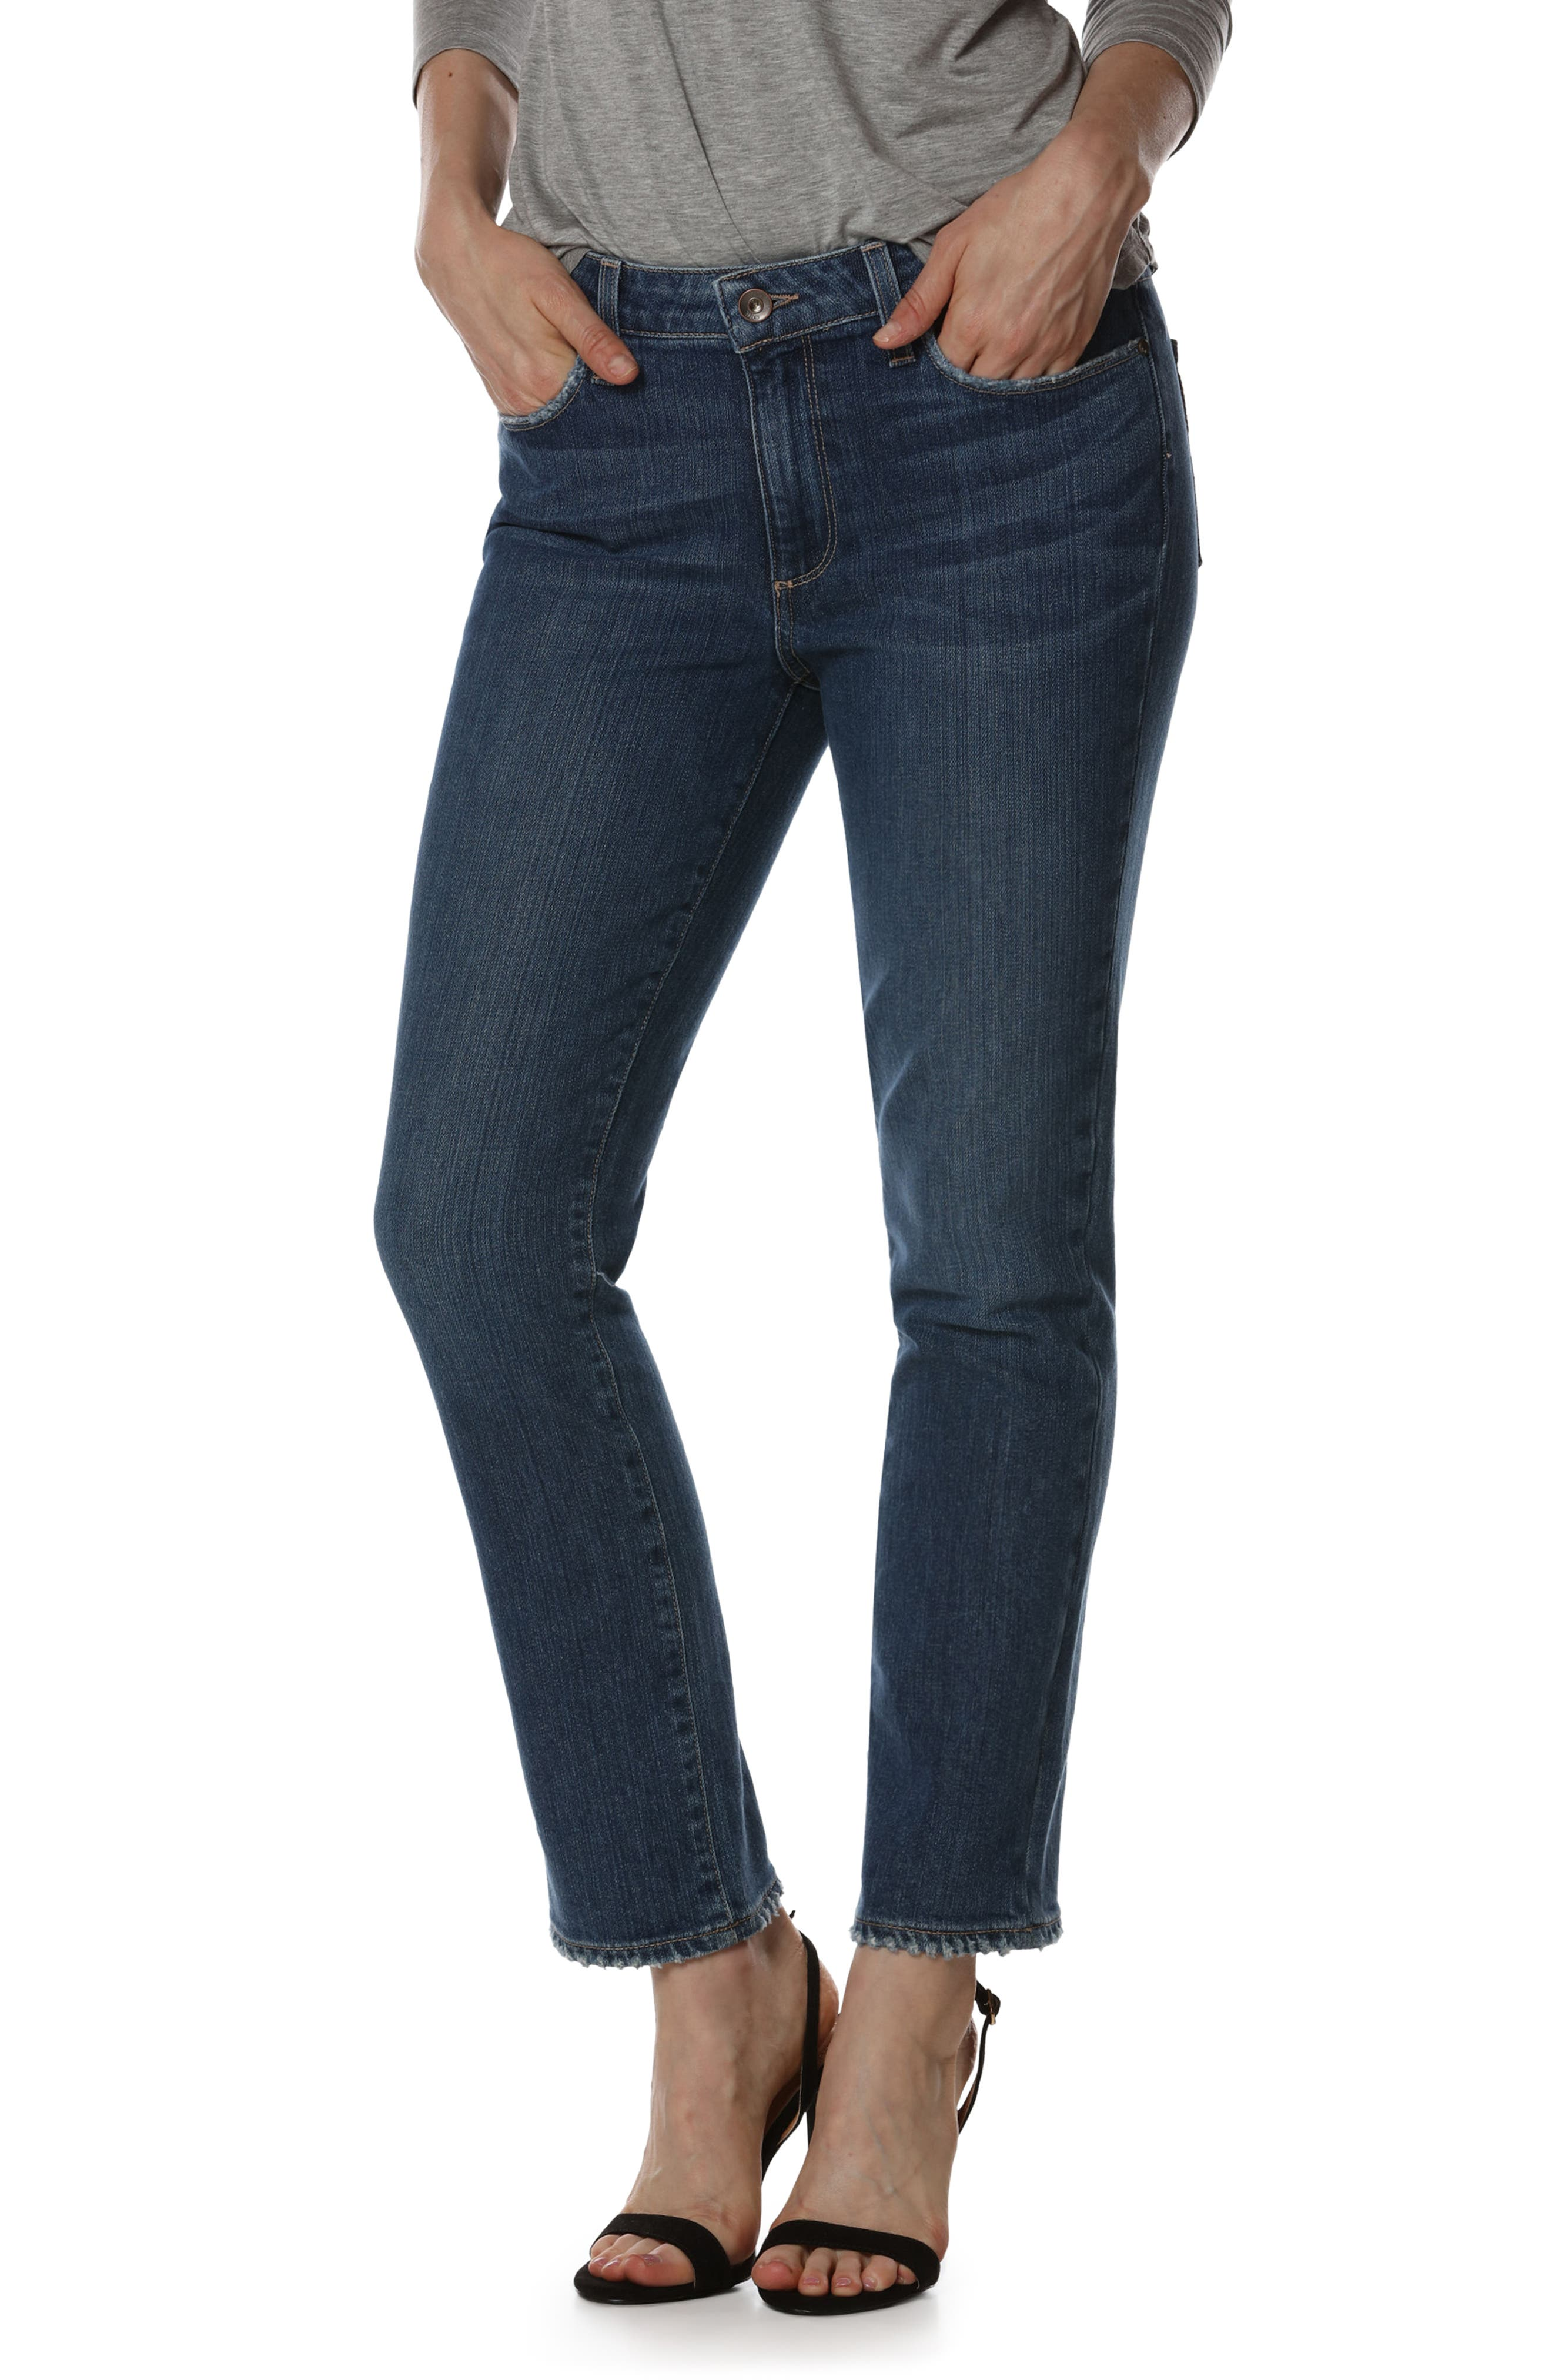 Jacqueline High Waist Ankle Straight Leg Jeans,                         Main,                         color, Good Life Embroidery